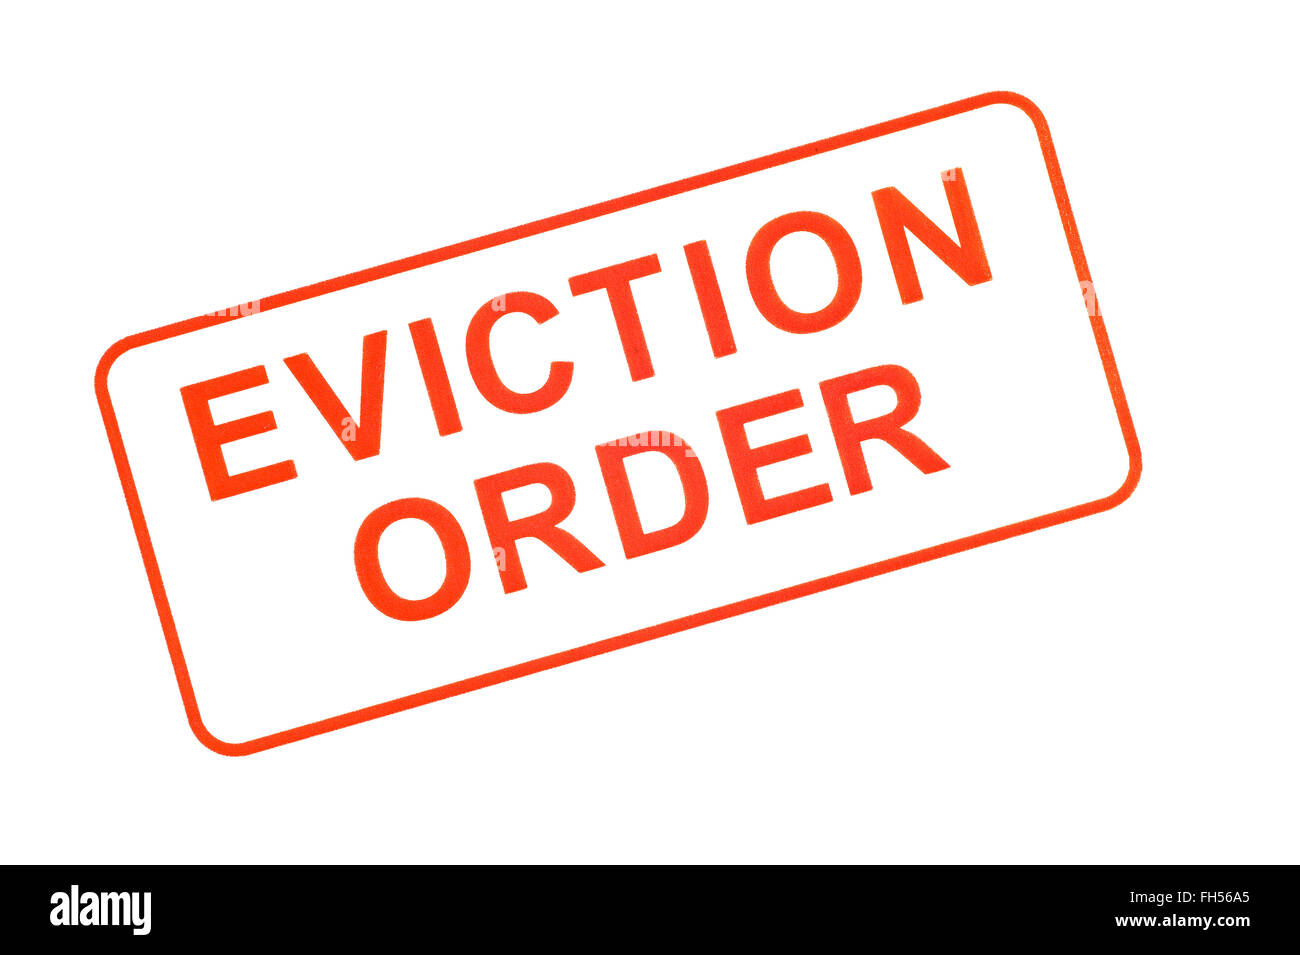 Order Sign Stockfotos & Order Sign Bilder - Seite 2 - Alamy